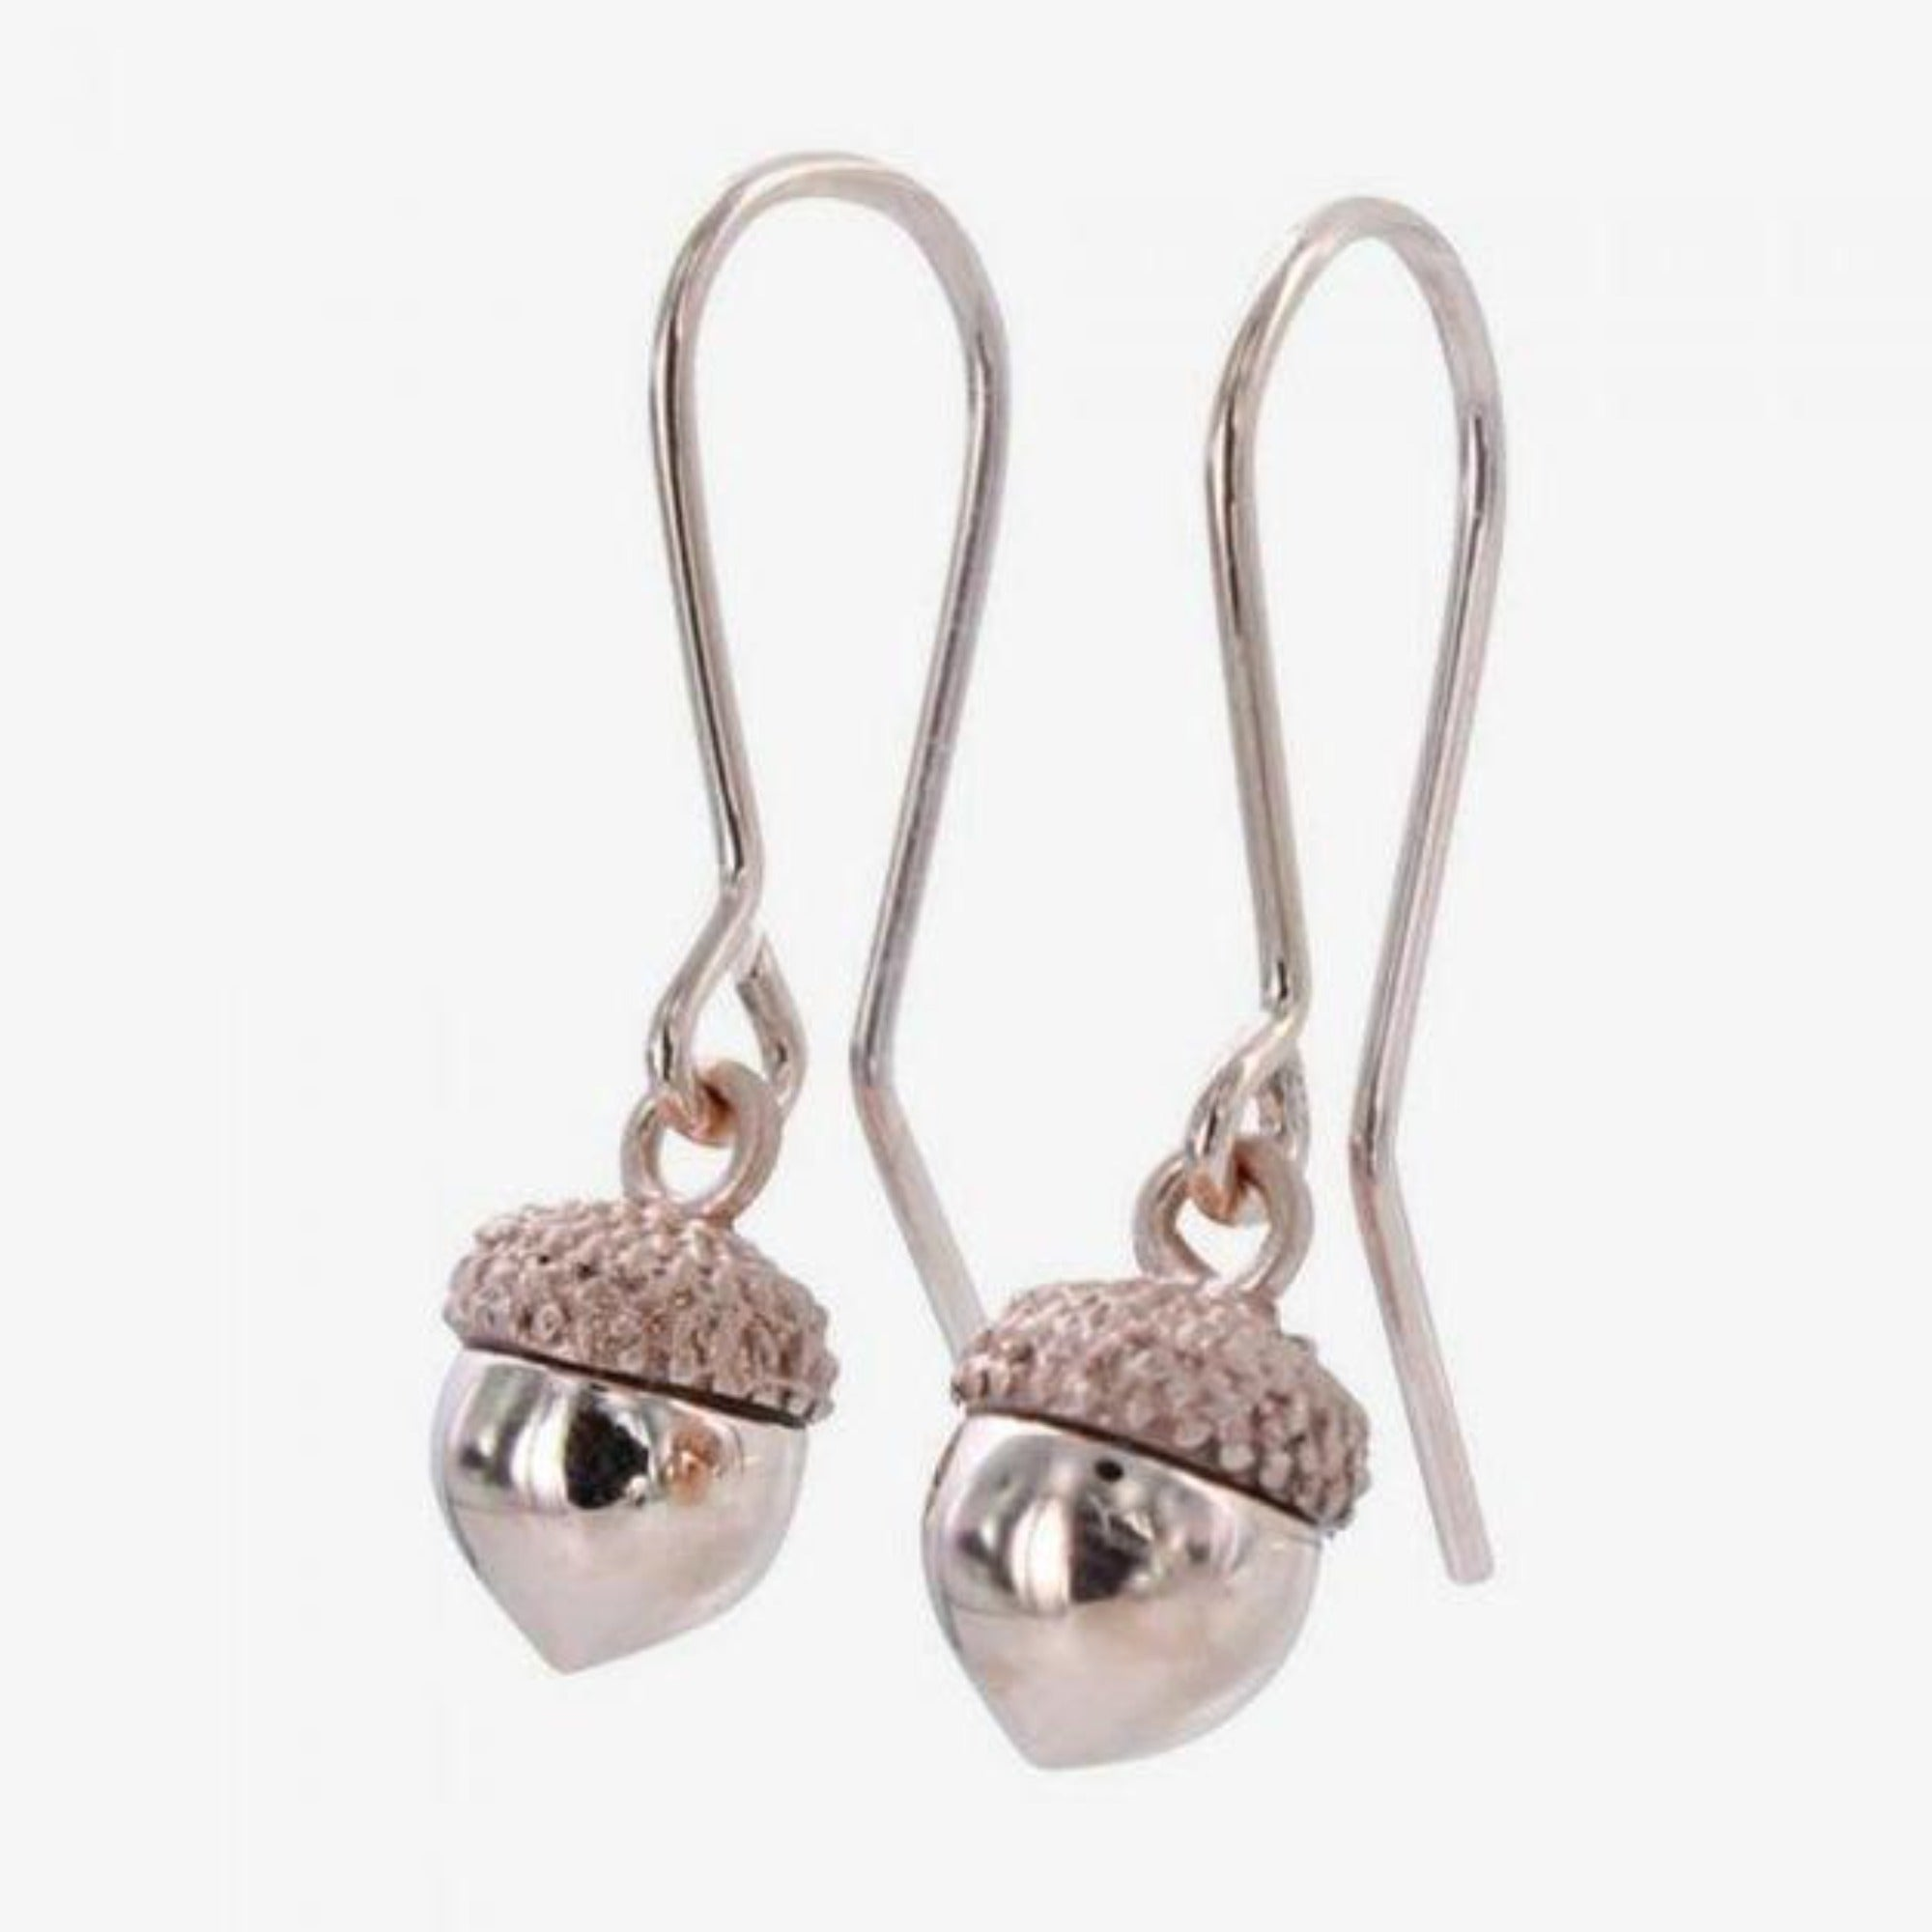 18k Rose Gold Acorn Earrings